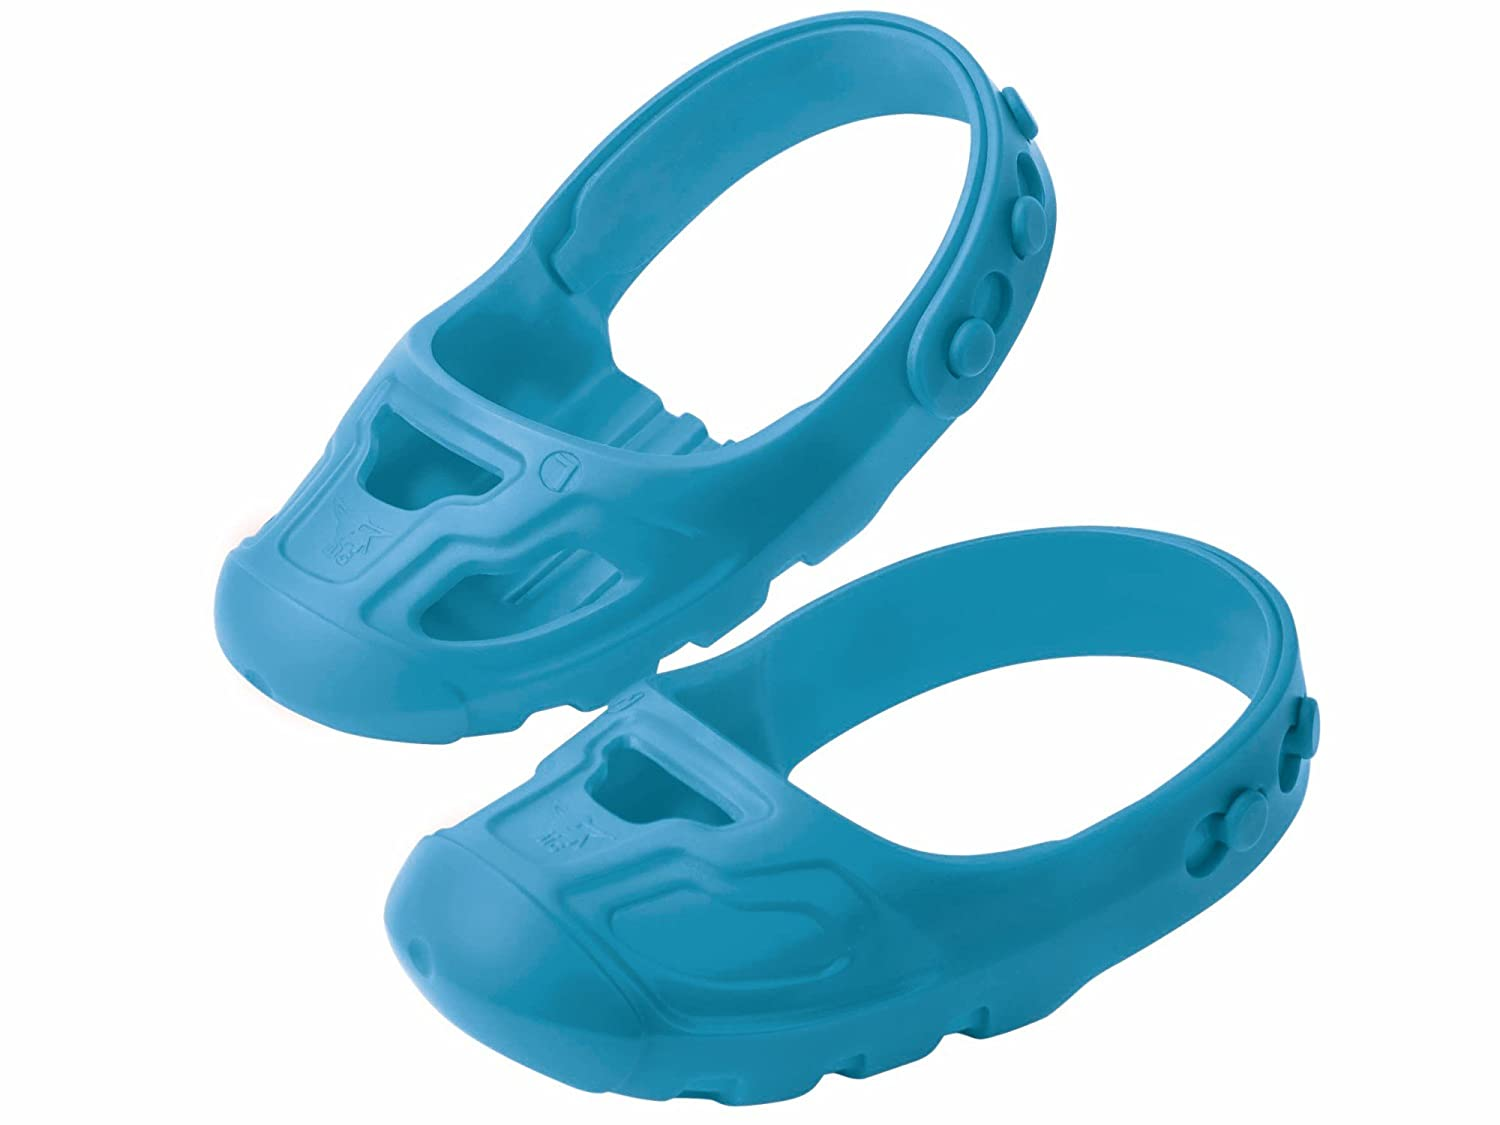 Bobby-Car Schuhschoner - BIG Shoe-Care Blau